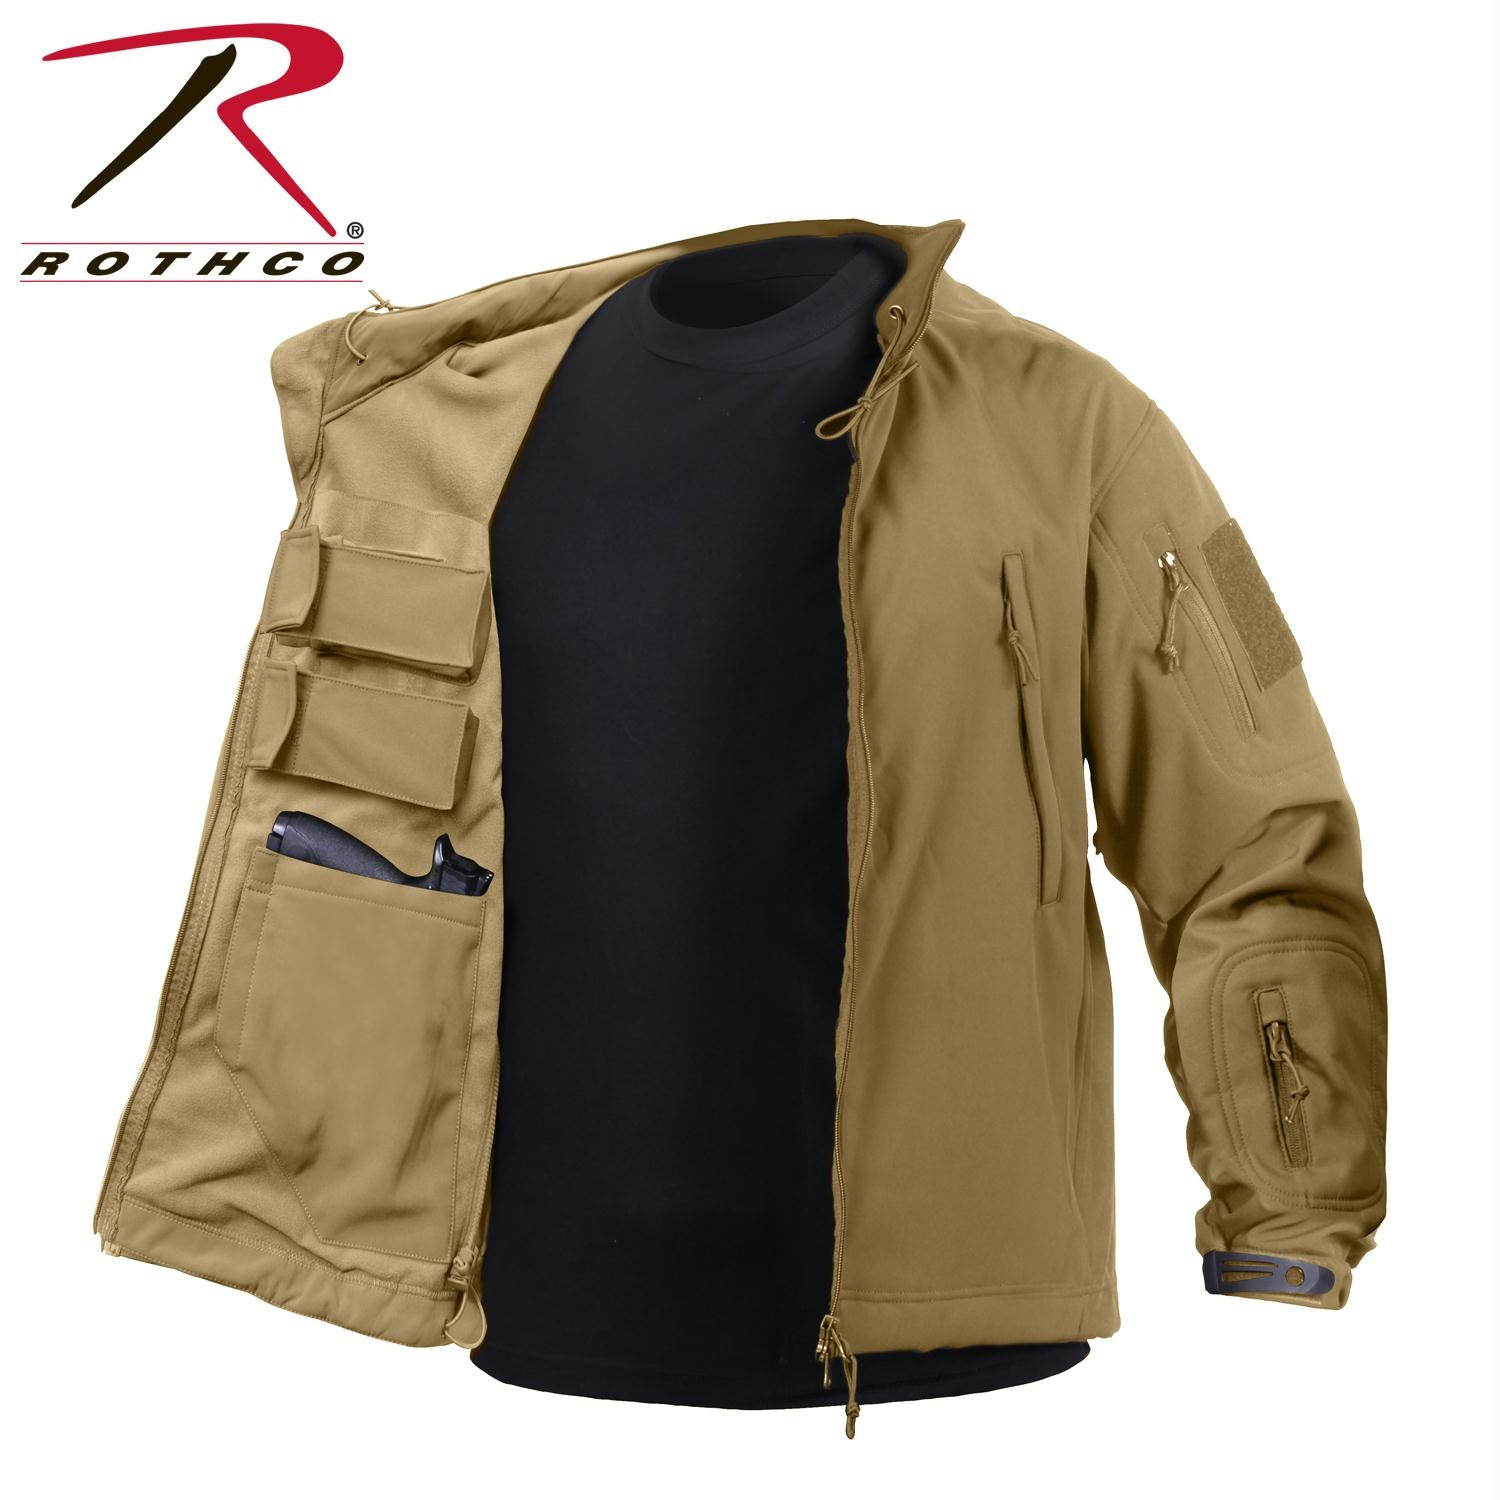 Rothco Concealed Carry Soft Shell Jacket - Coyote Brown / M